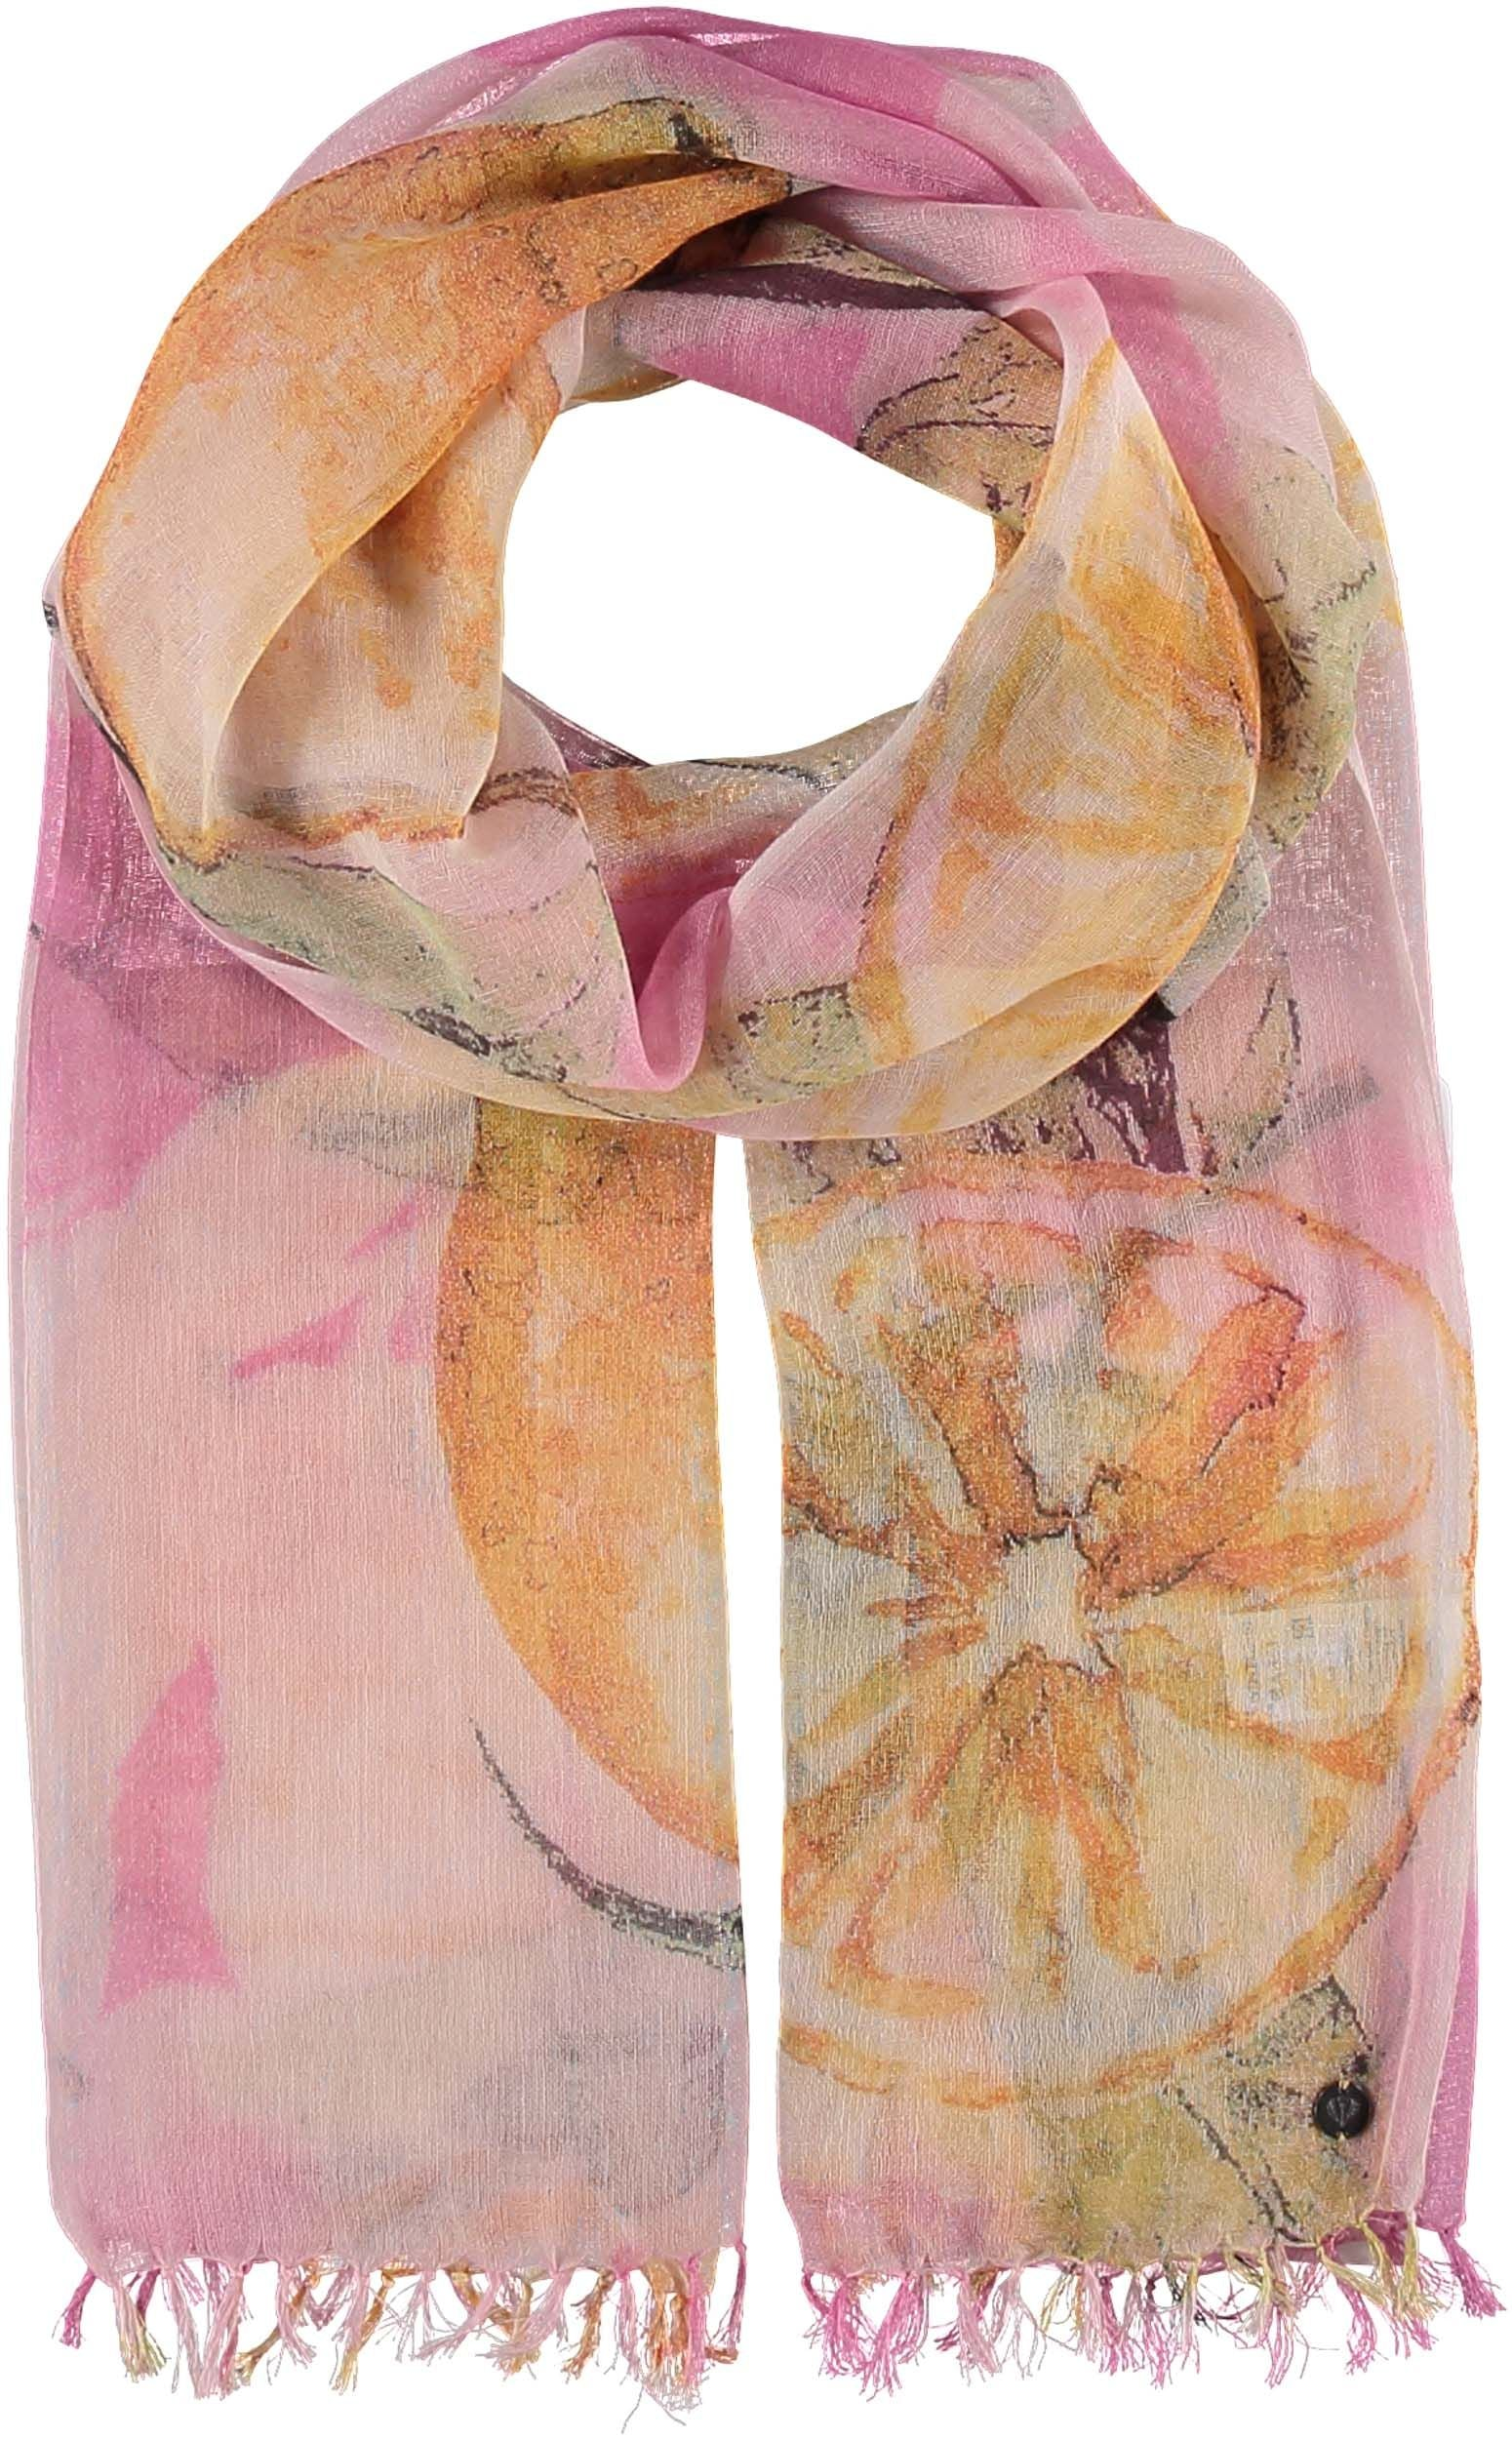 Lemon Zest Cotton Linen Wool Blend Print Scarf